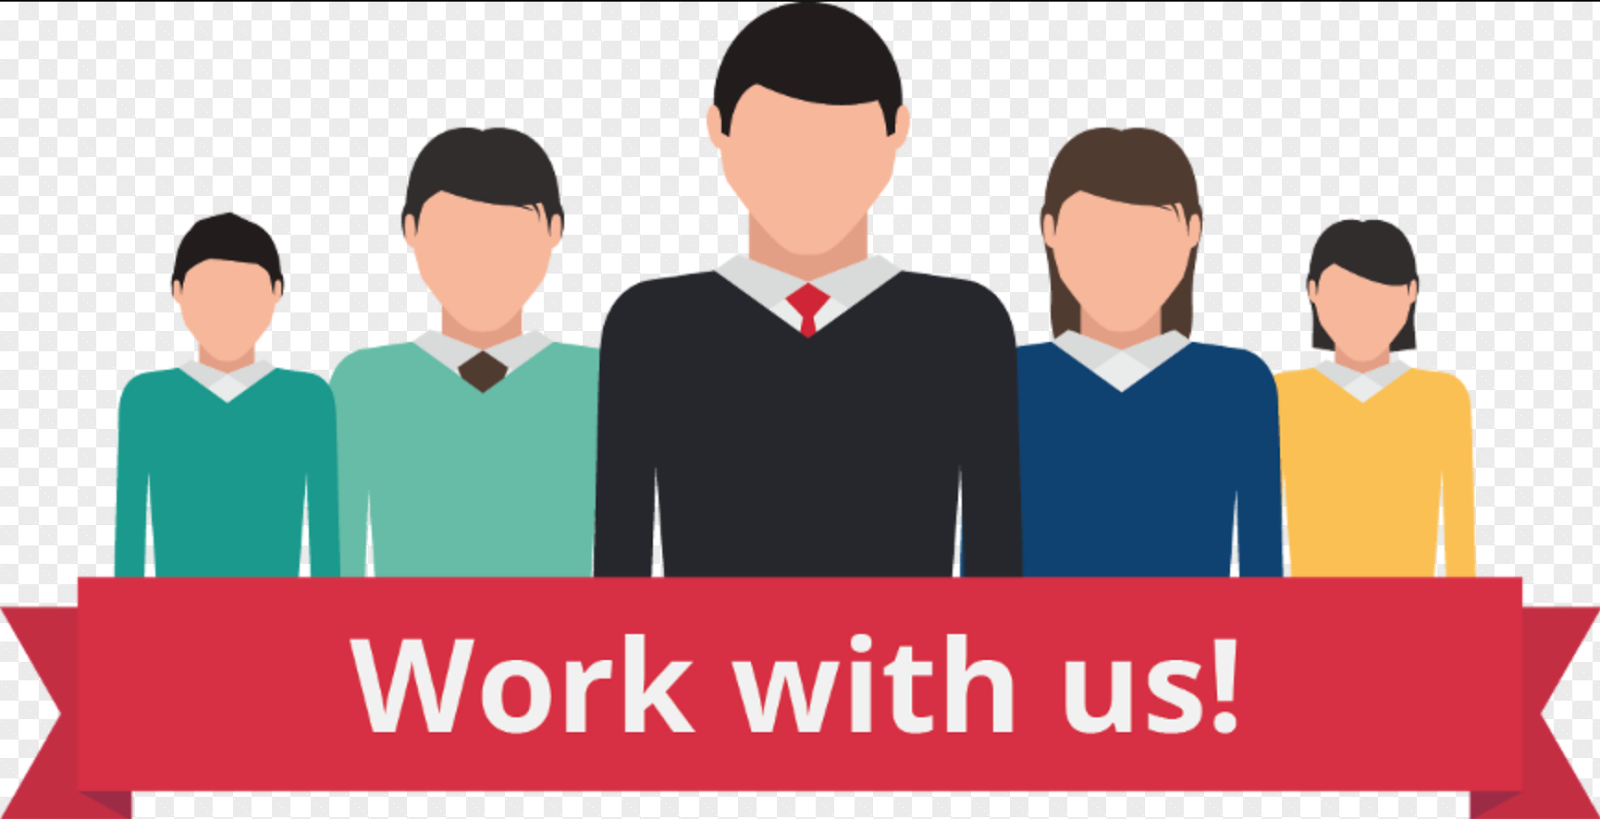 WORK WITH US - EARN MONEY